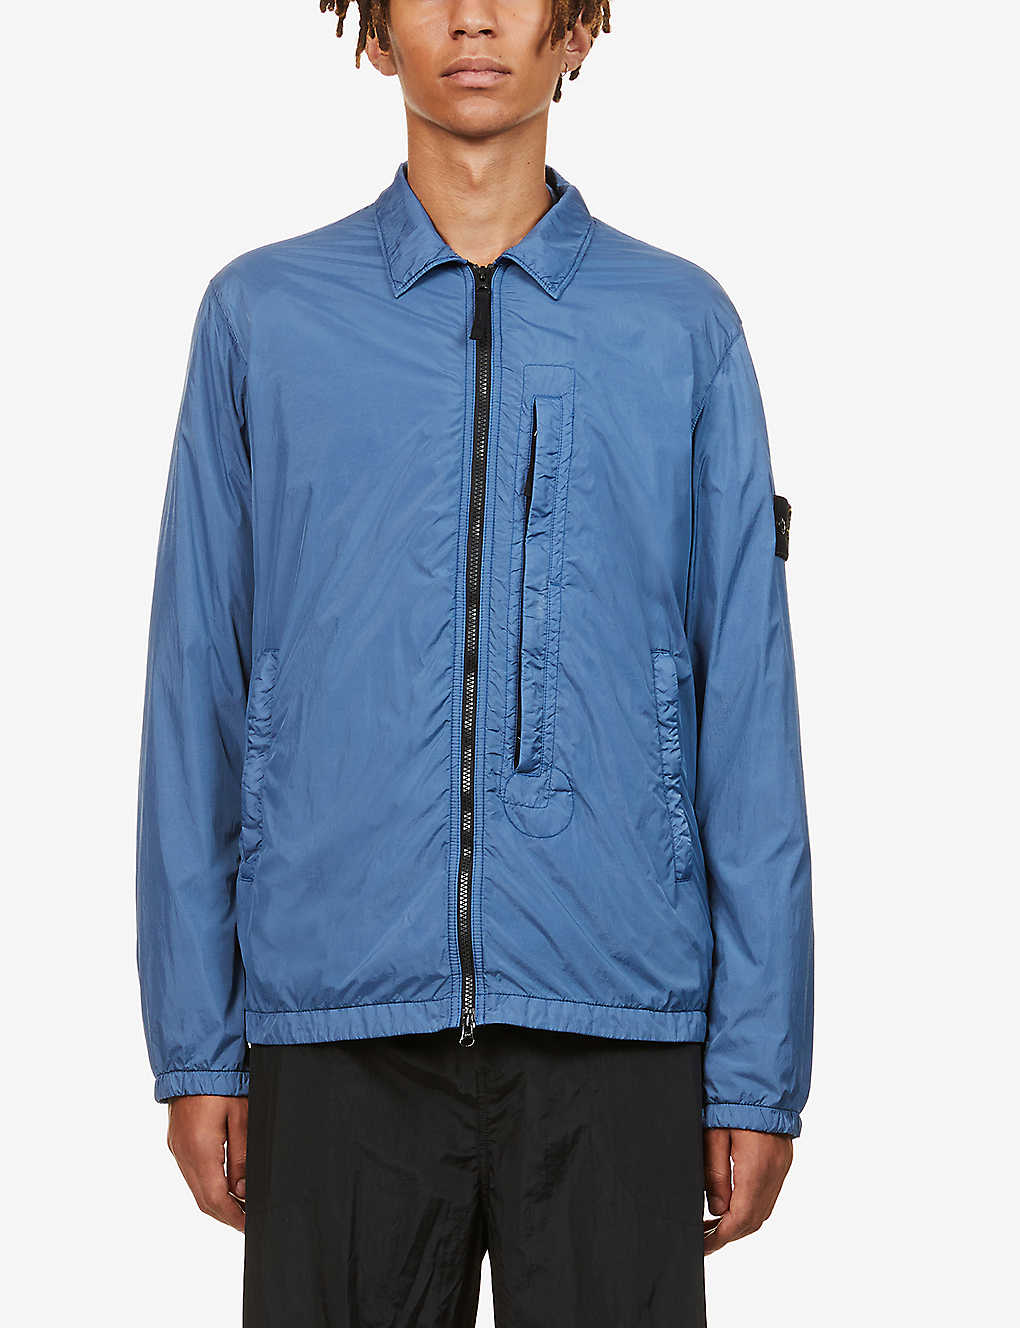 STONE ISLAND: Crinkle Reps shell jacket